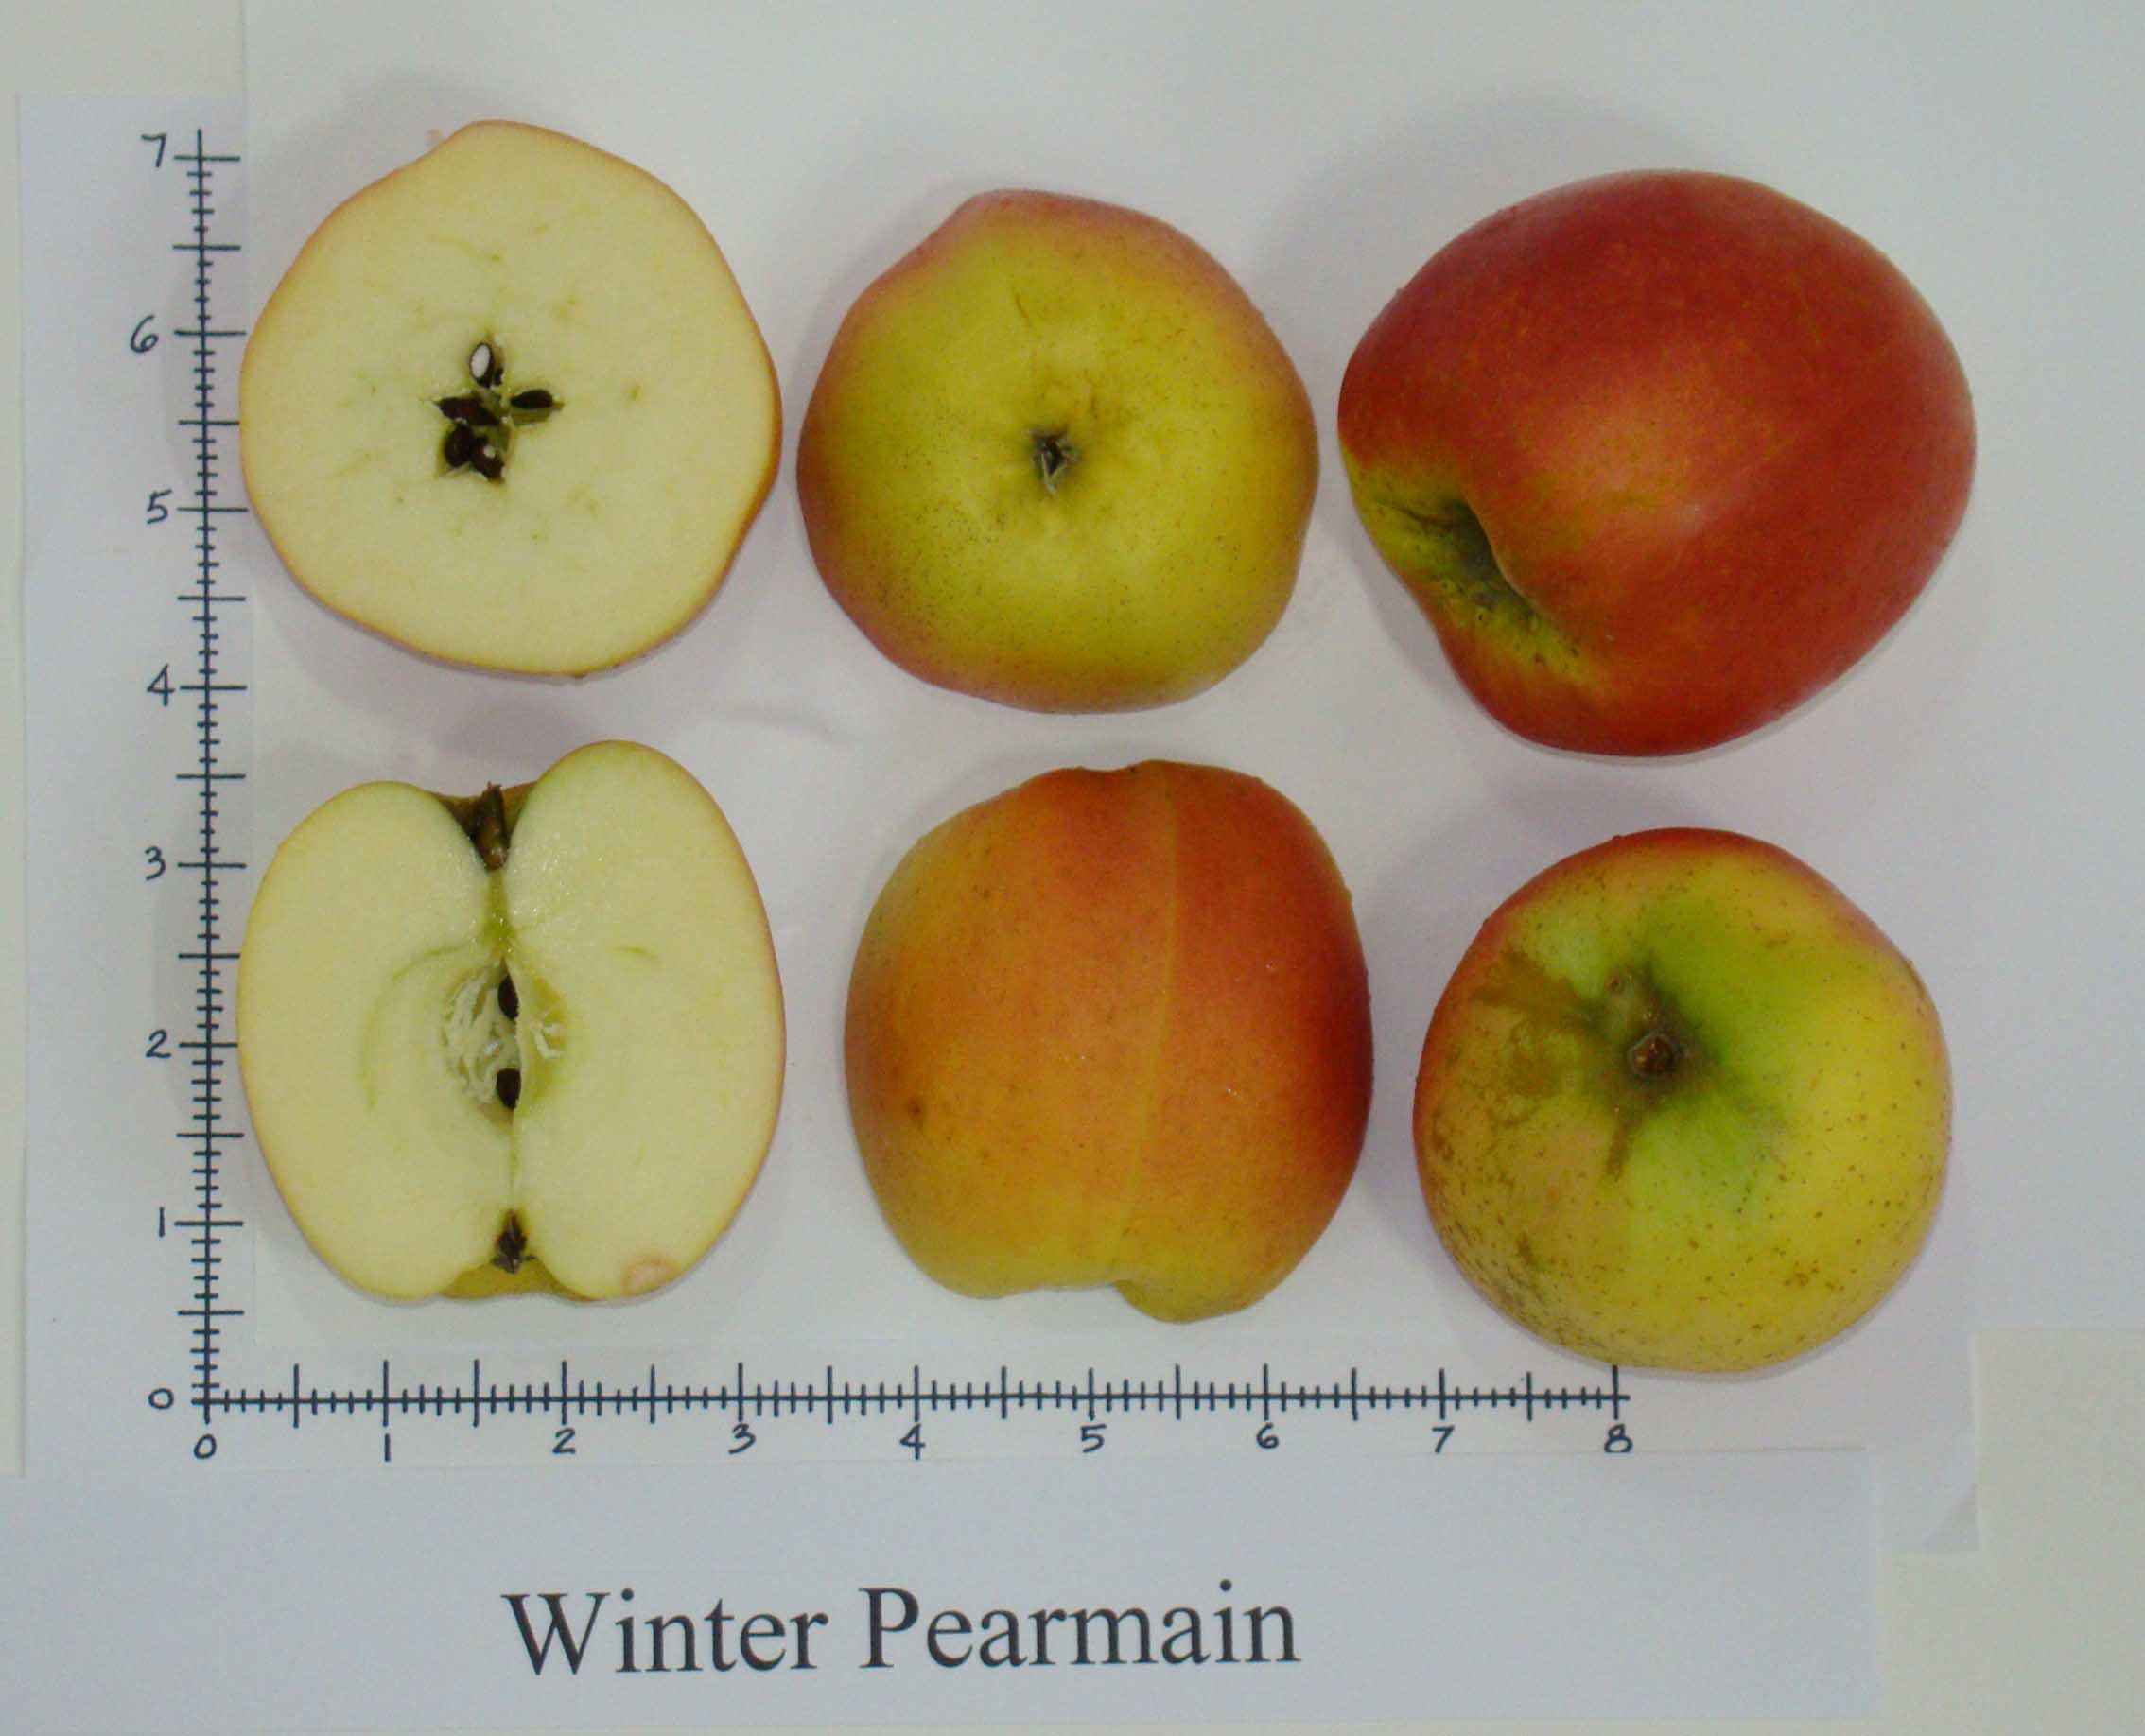 Winter Pearmain